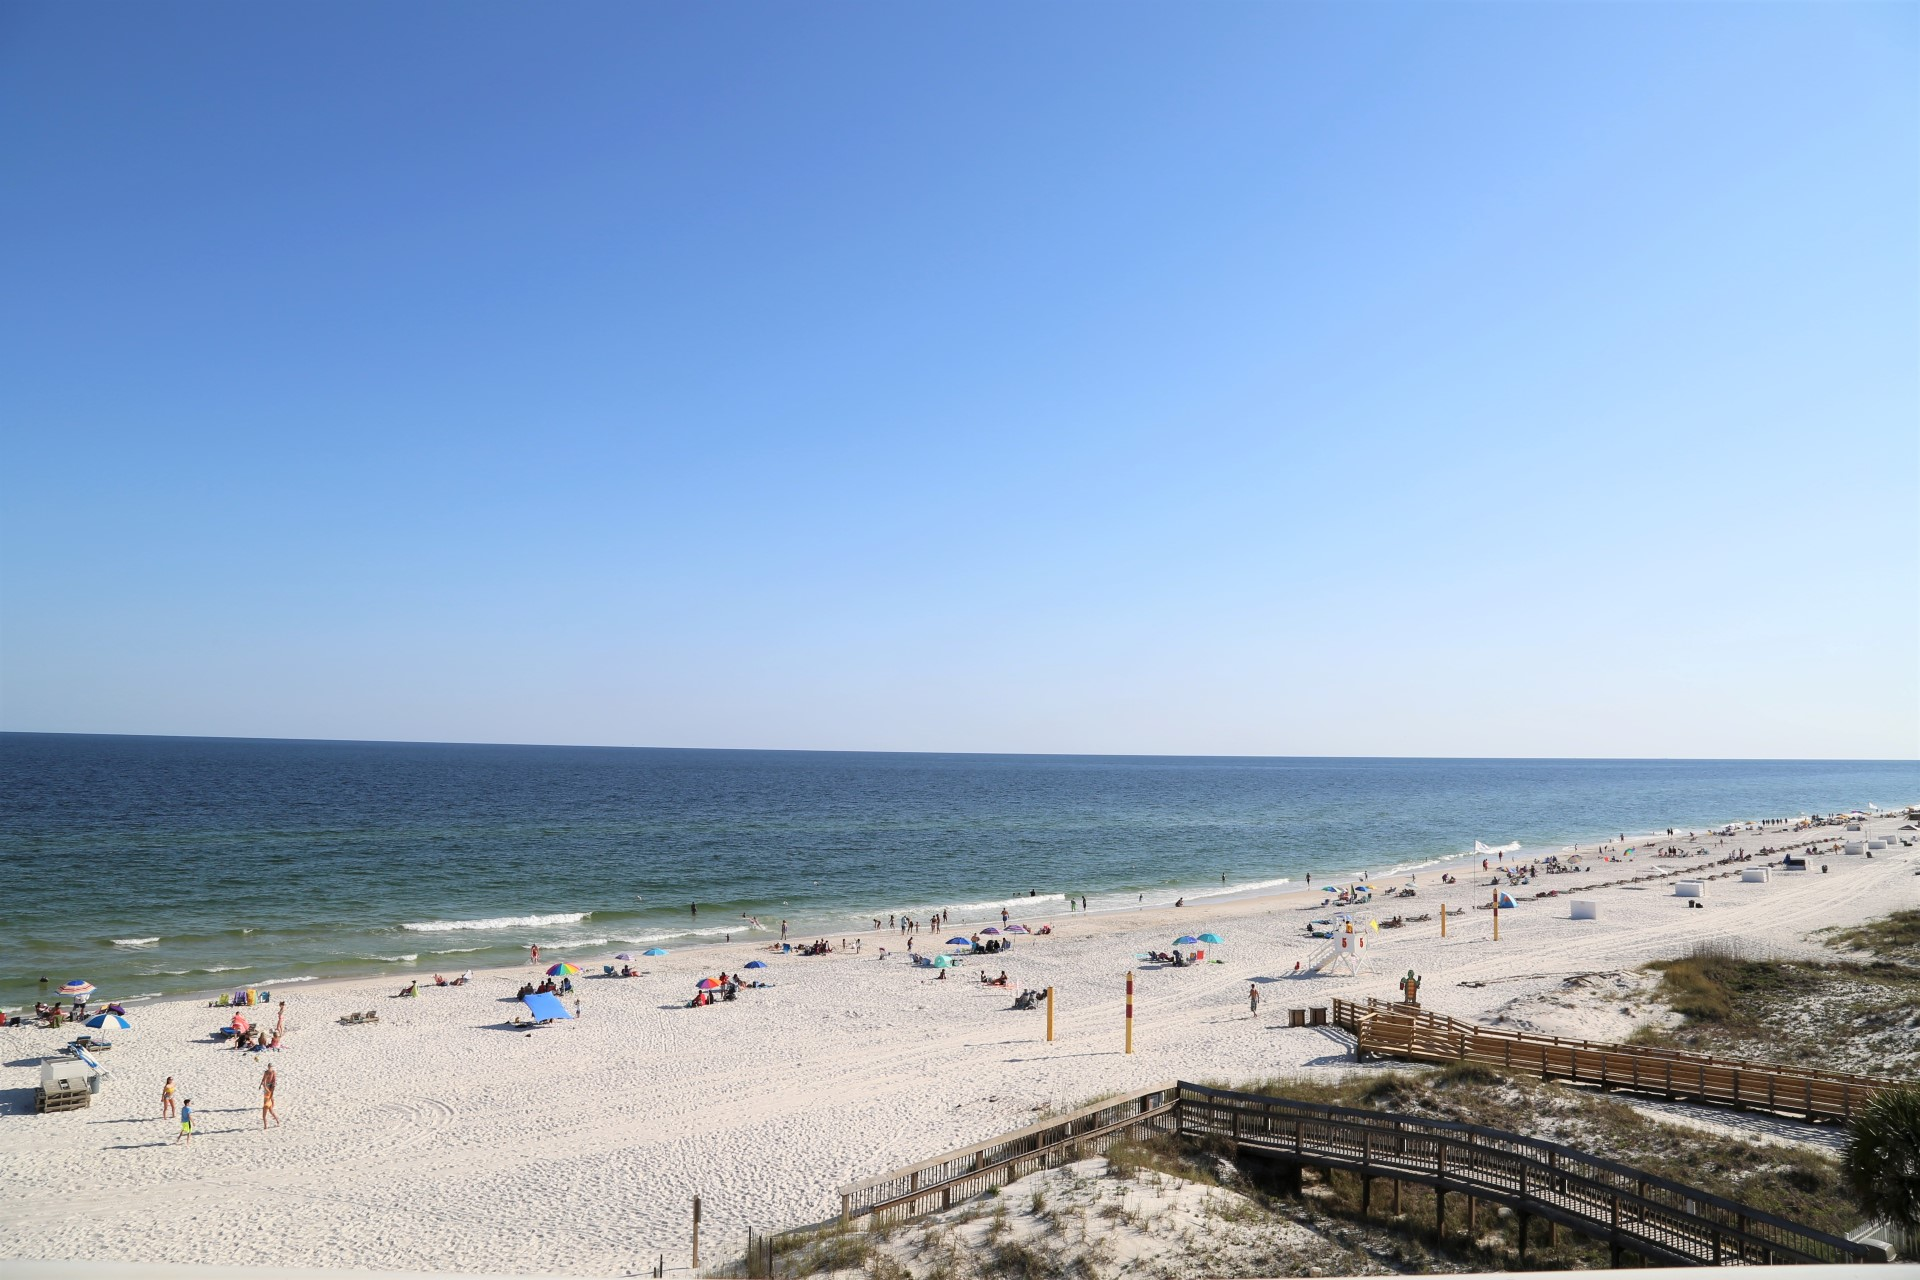 180 degree gulf front views